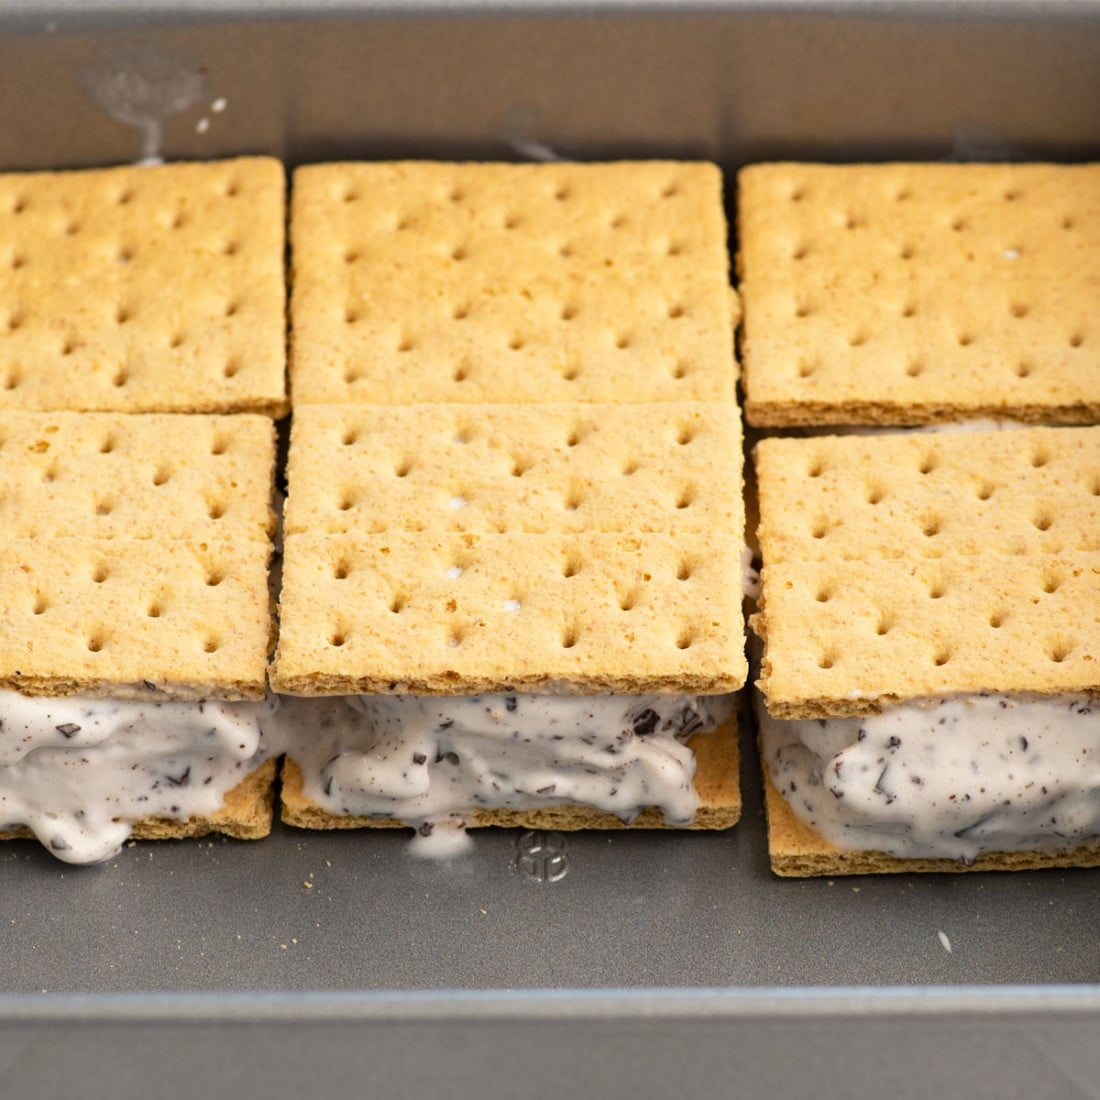 tray for holding the ice cream sandwiches while they are being made